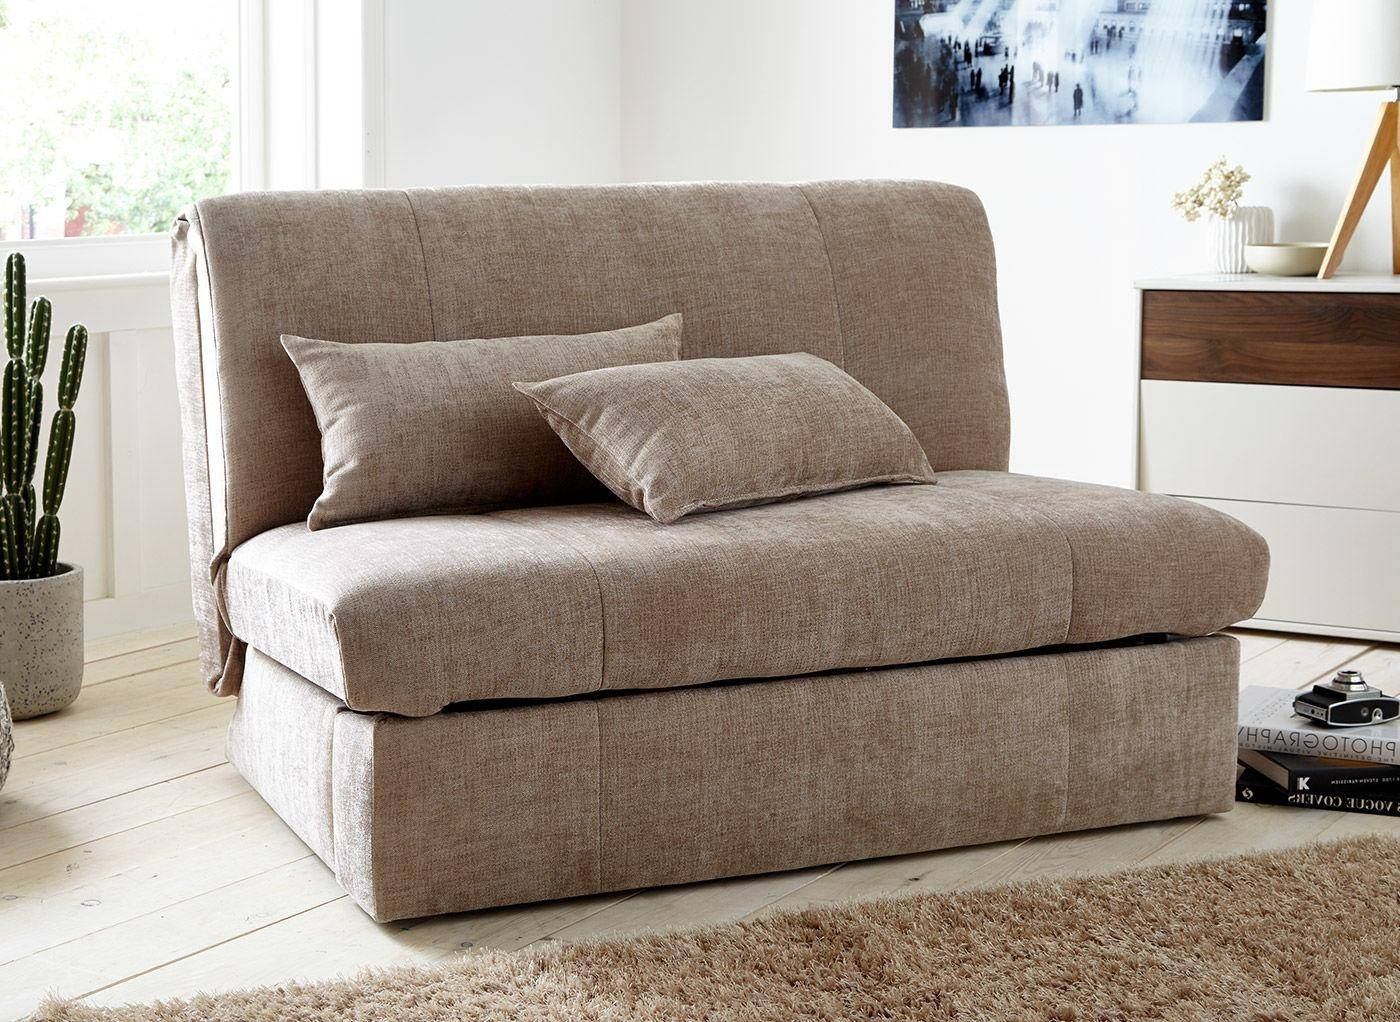 Sofa Ideas: Sofa Beds With Support Boards (Explore #20 Of 20 Photos) for Sofa Beds With Support Boards (Image 13 of 15)